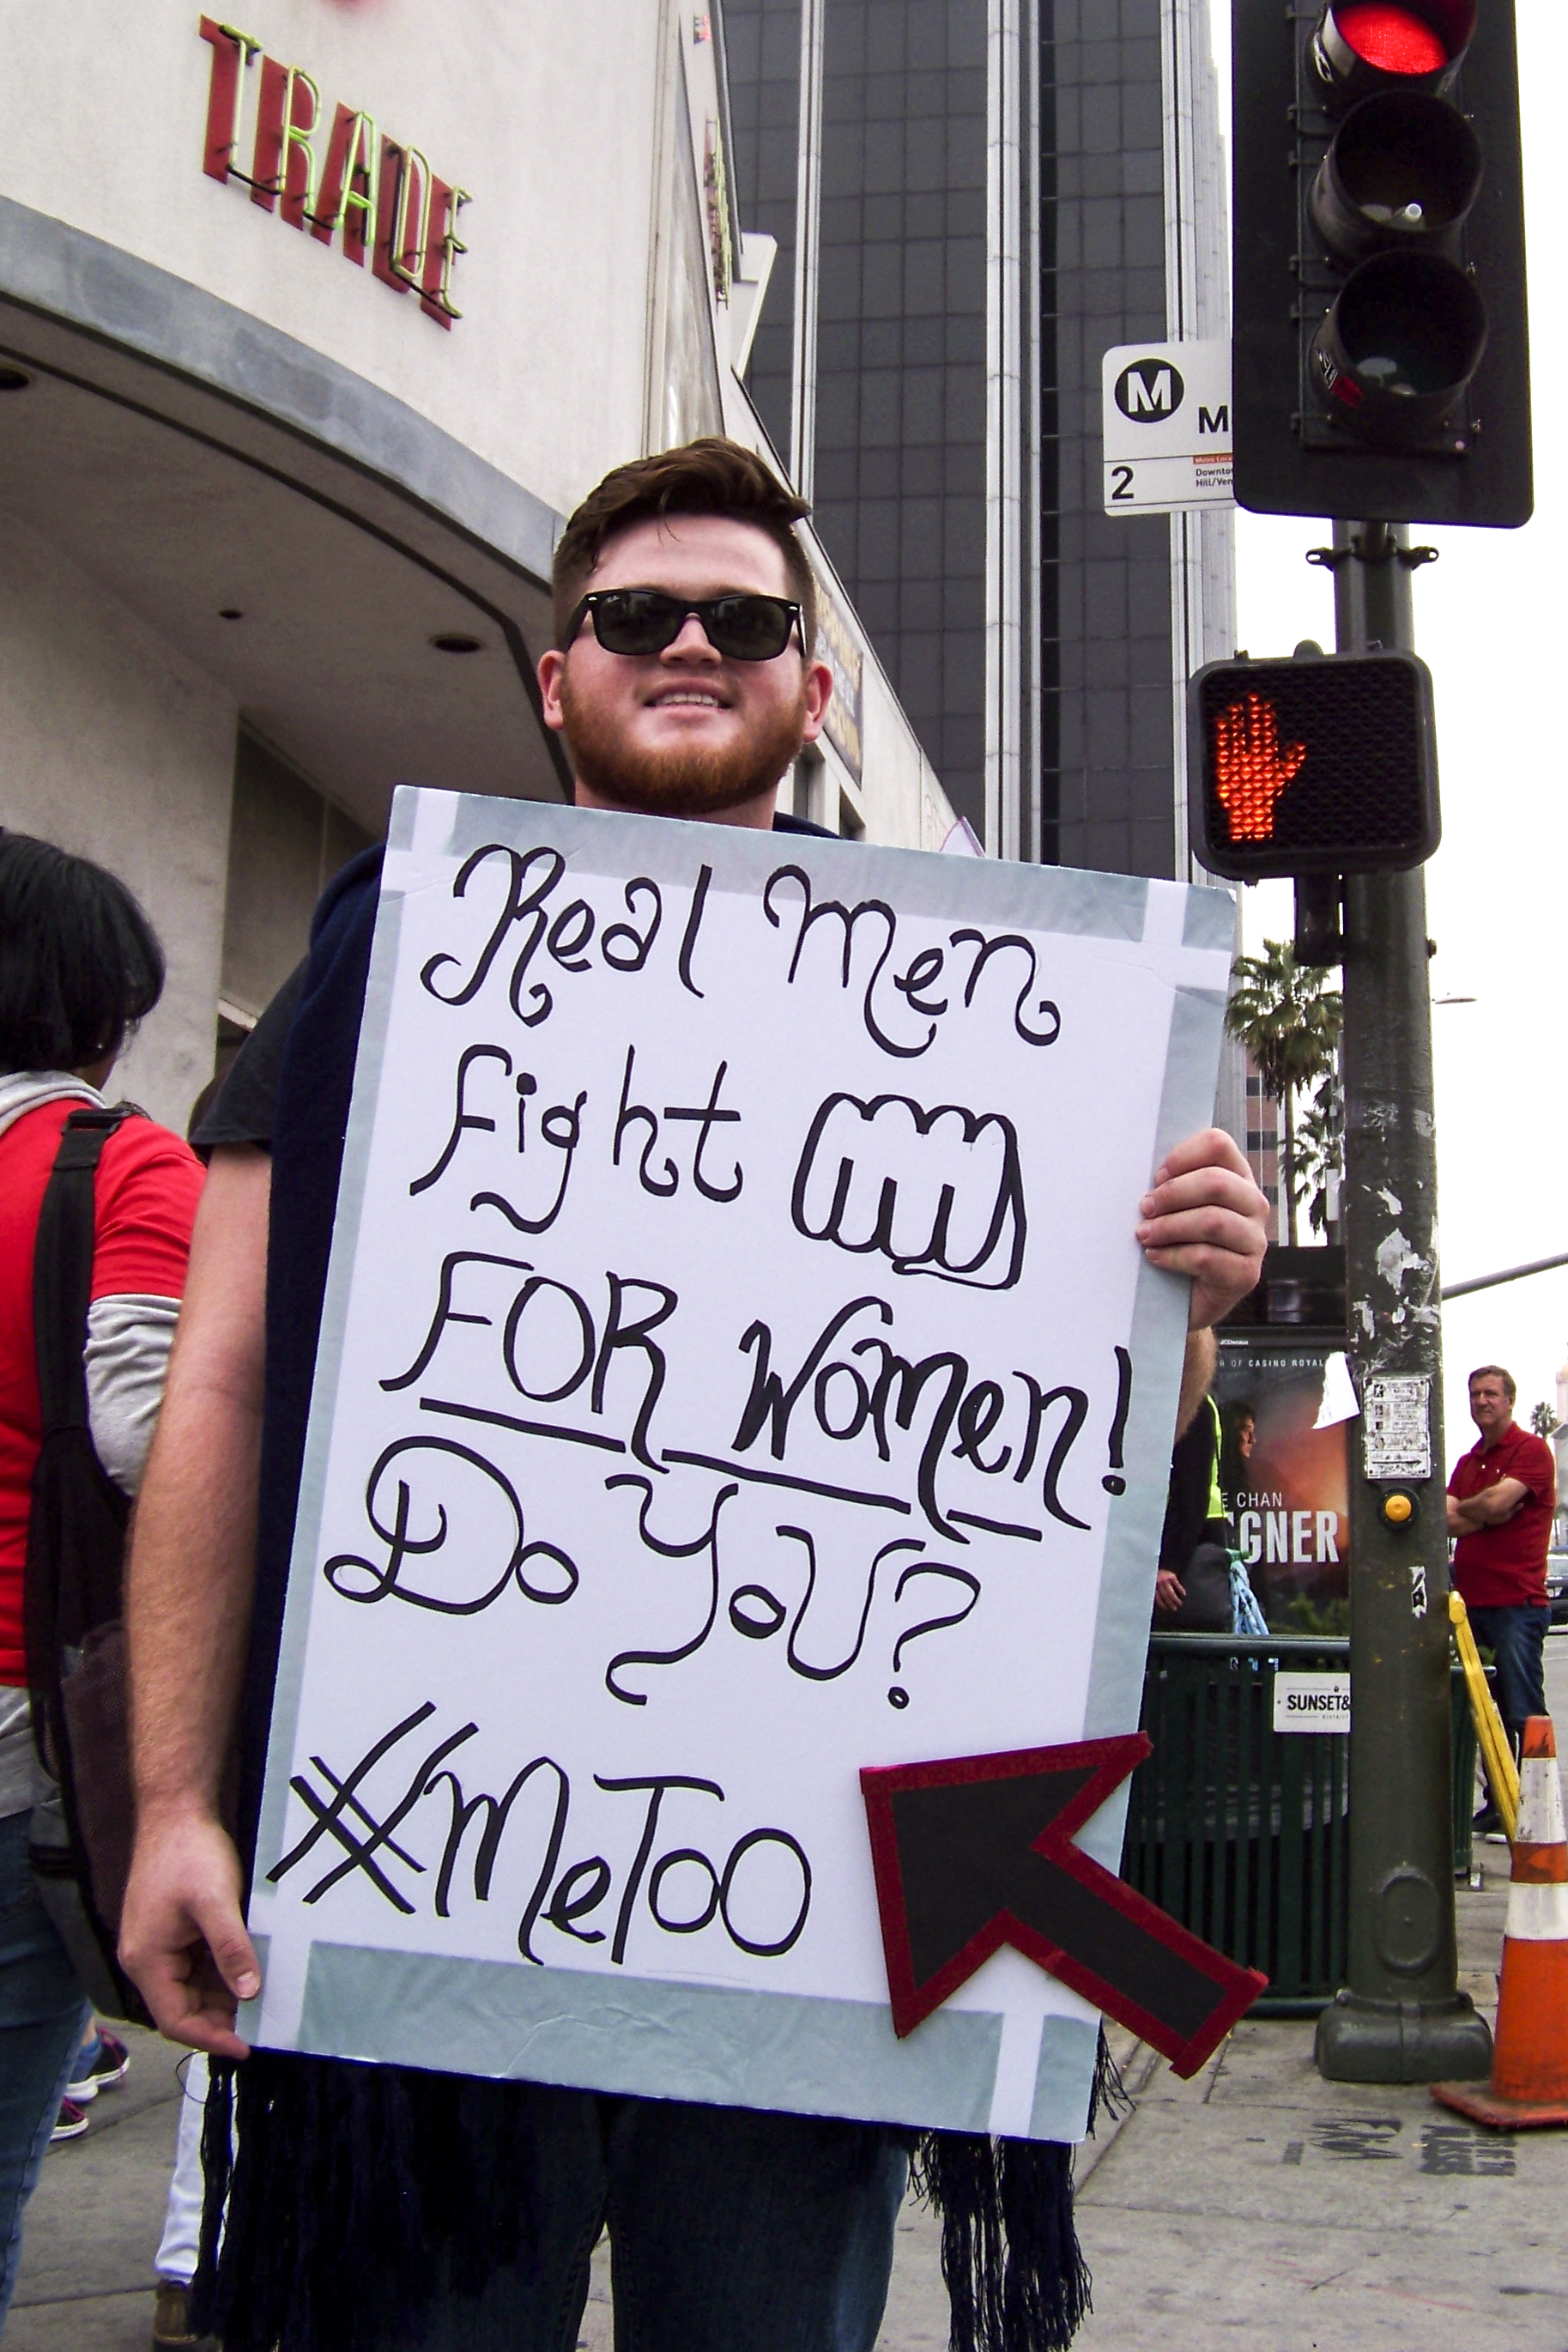 Jarred Fiorda standing proudly as a Me Too protester as he reaches the end of the march at the CNN Building on November 12, 2017 in Hollywood, Calif. (Photo by Jakob Zermeno)